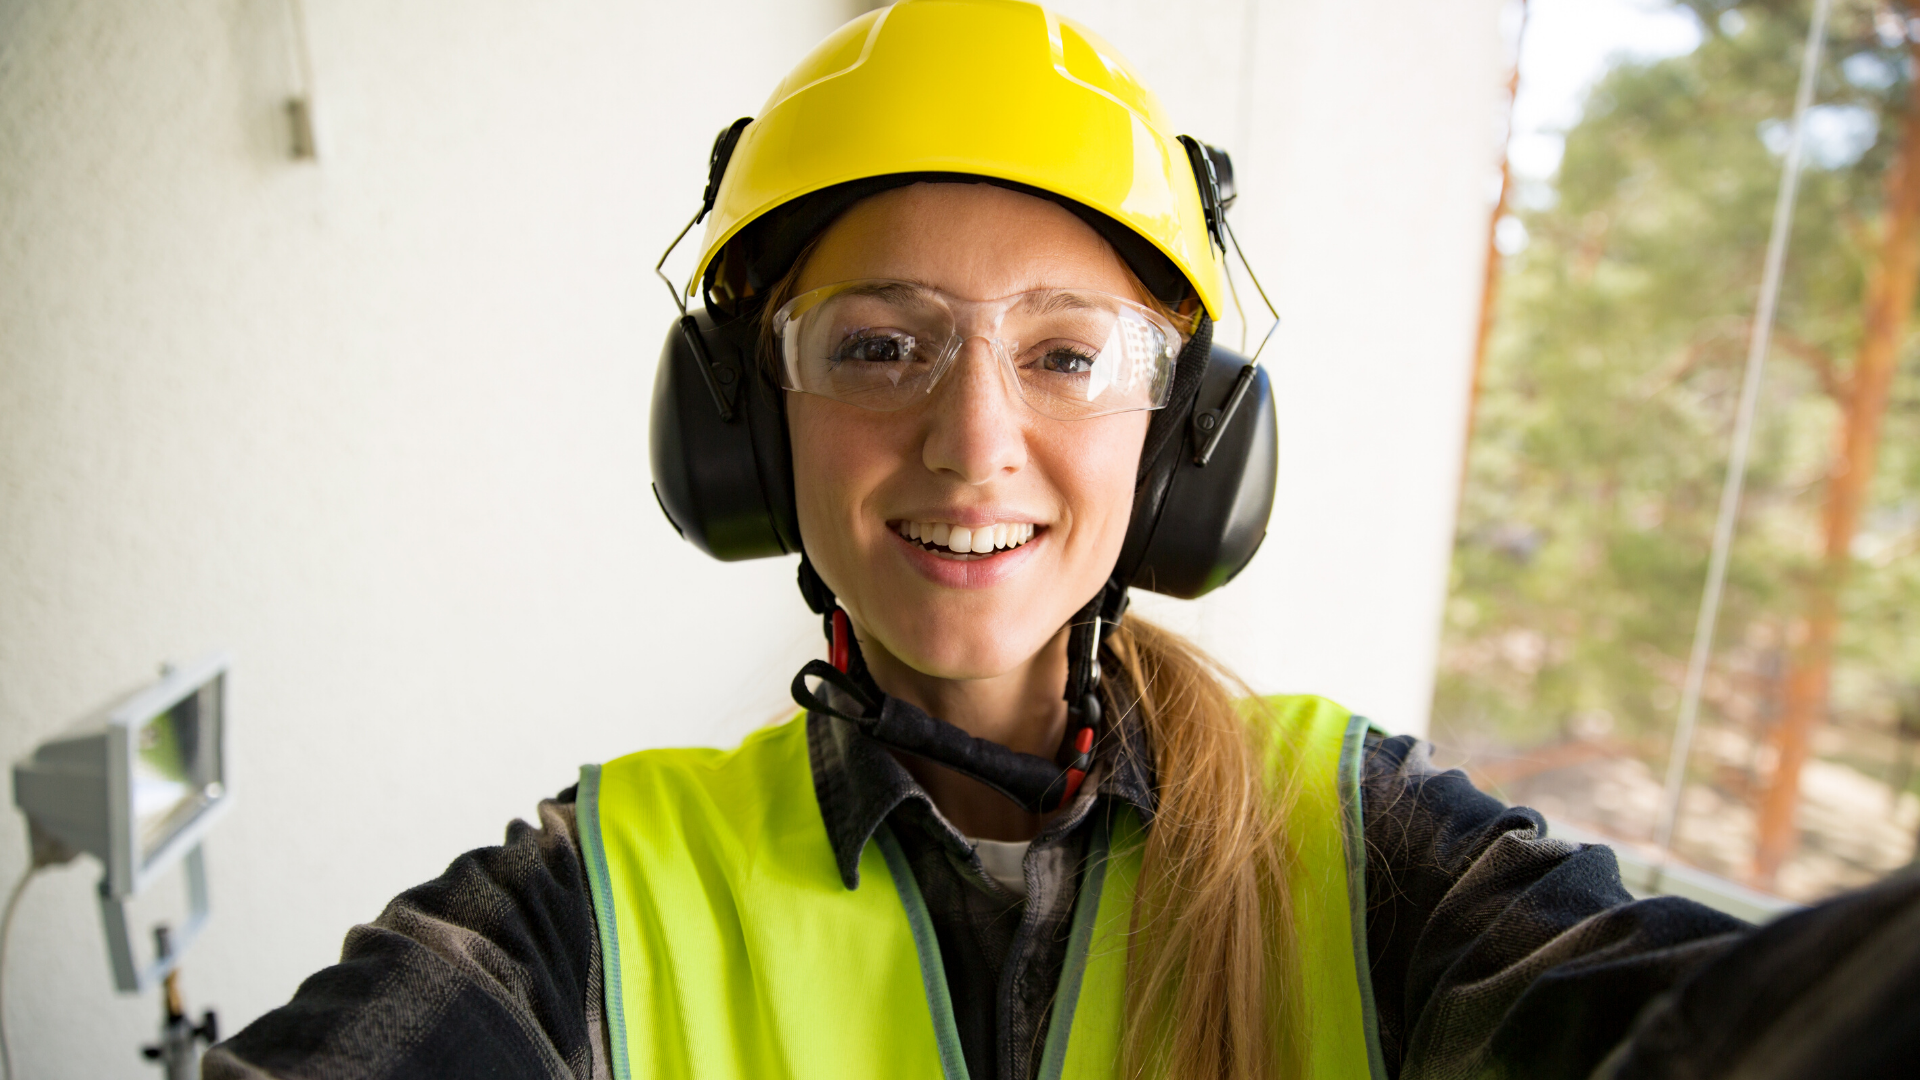 Smiling woman in high vis jacket and hard hat